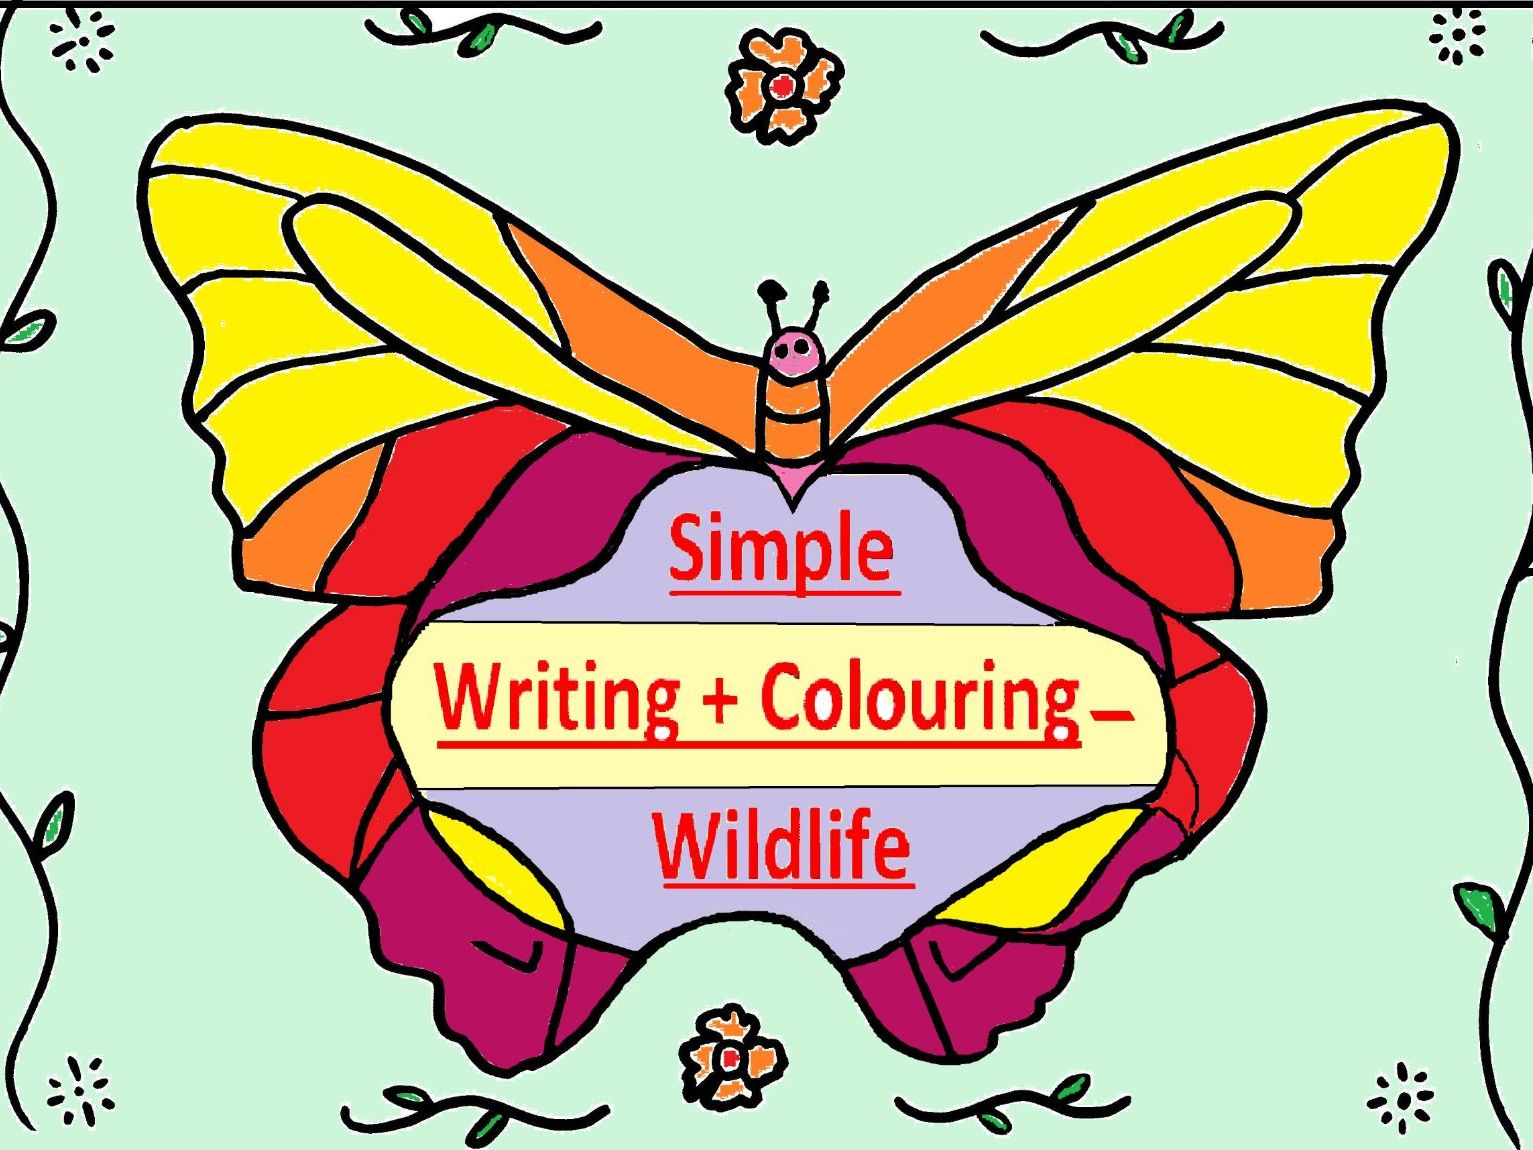 Simple Writing + Colouring - Wildlife